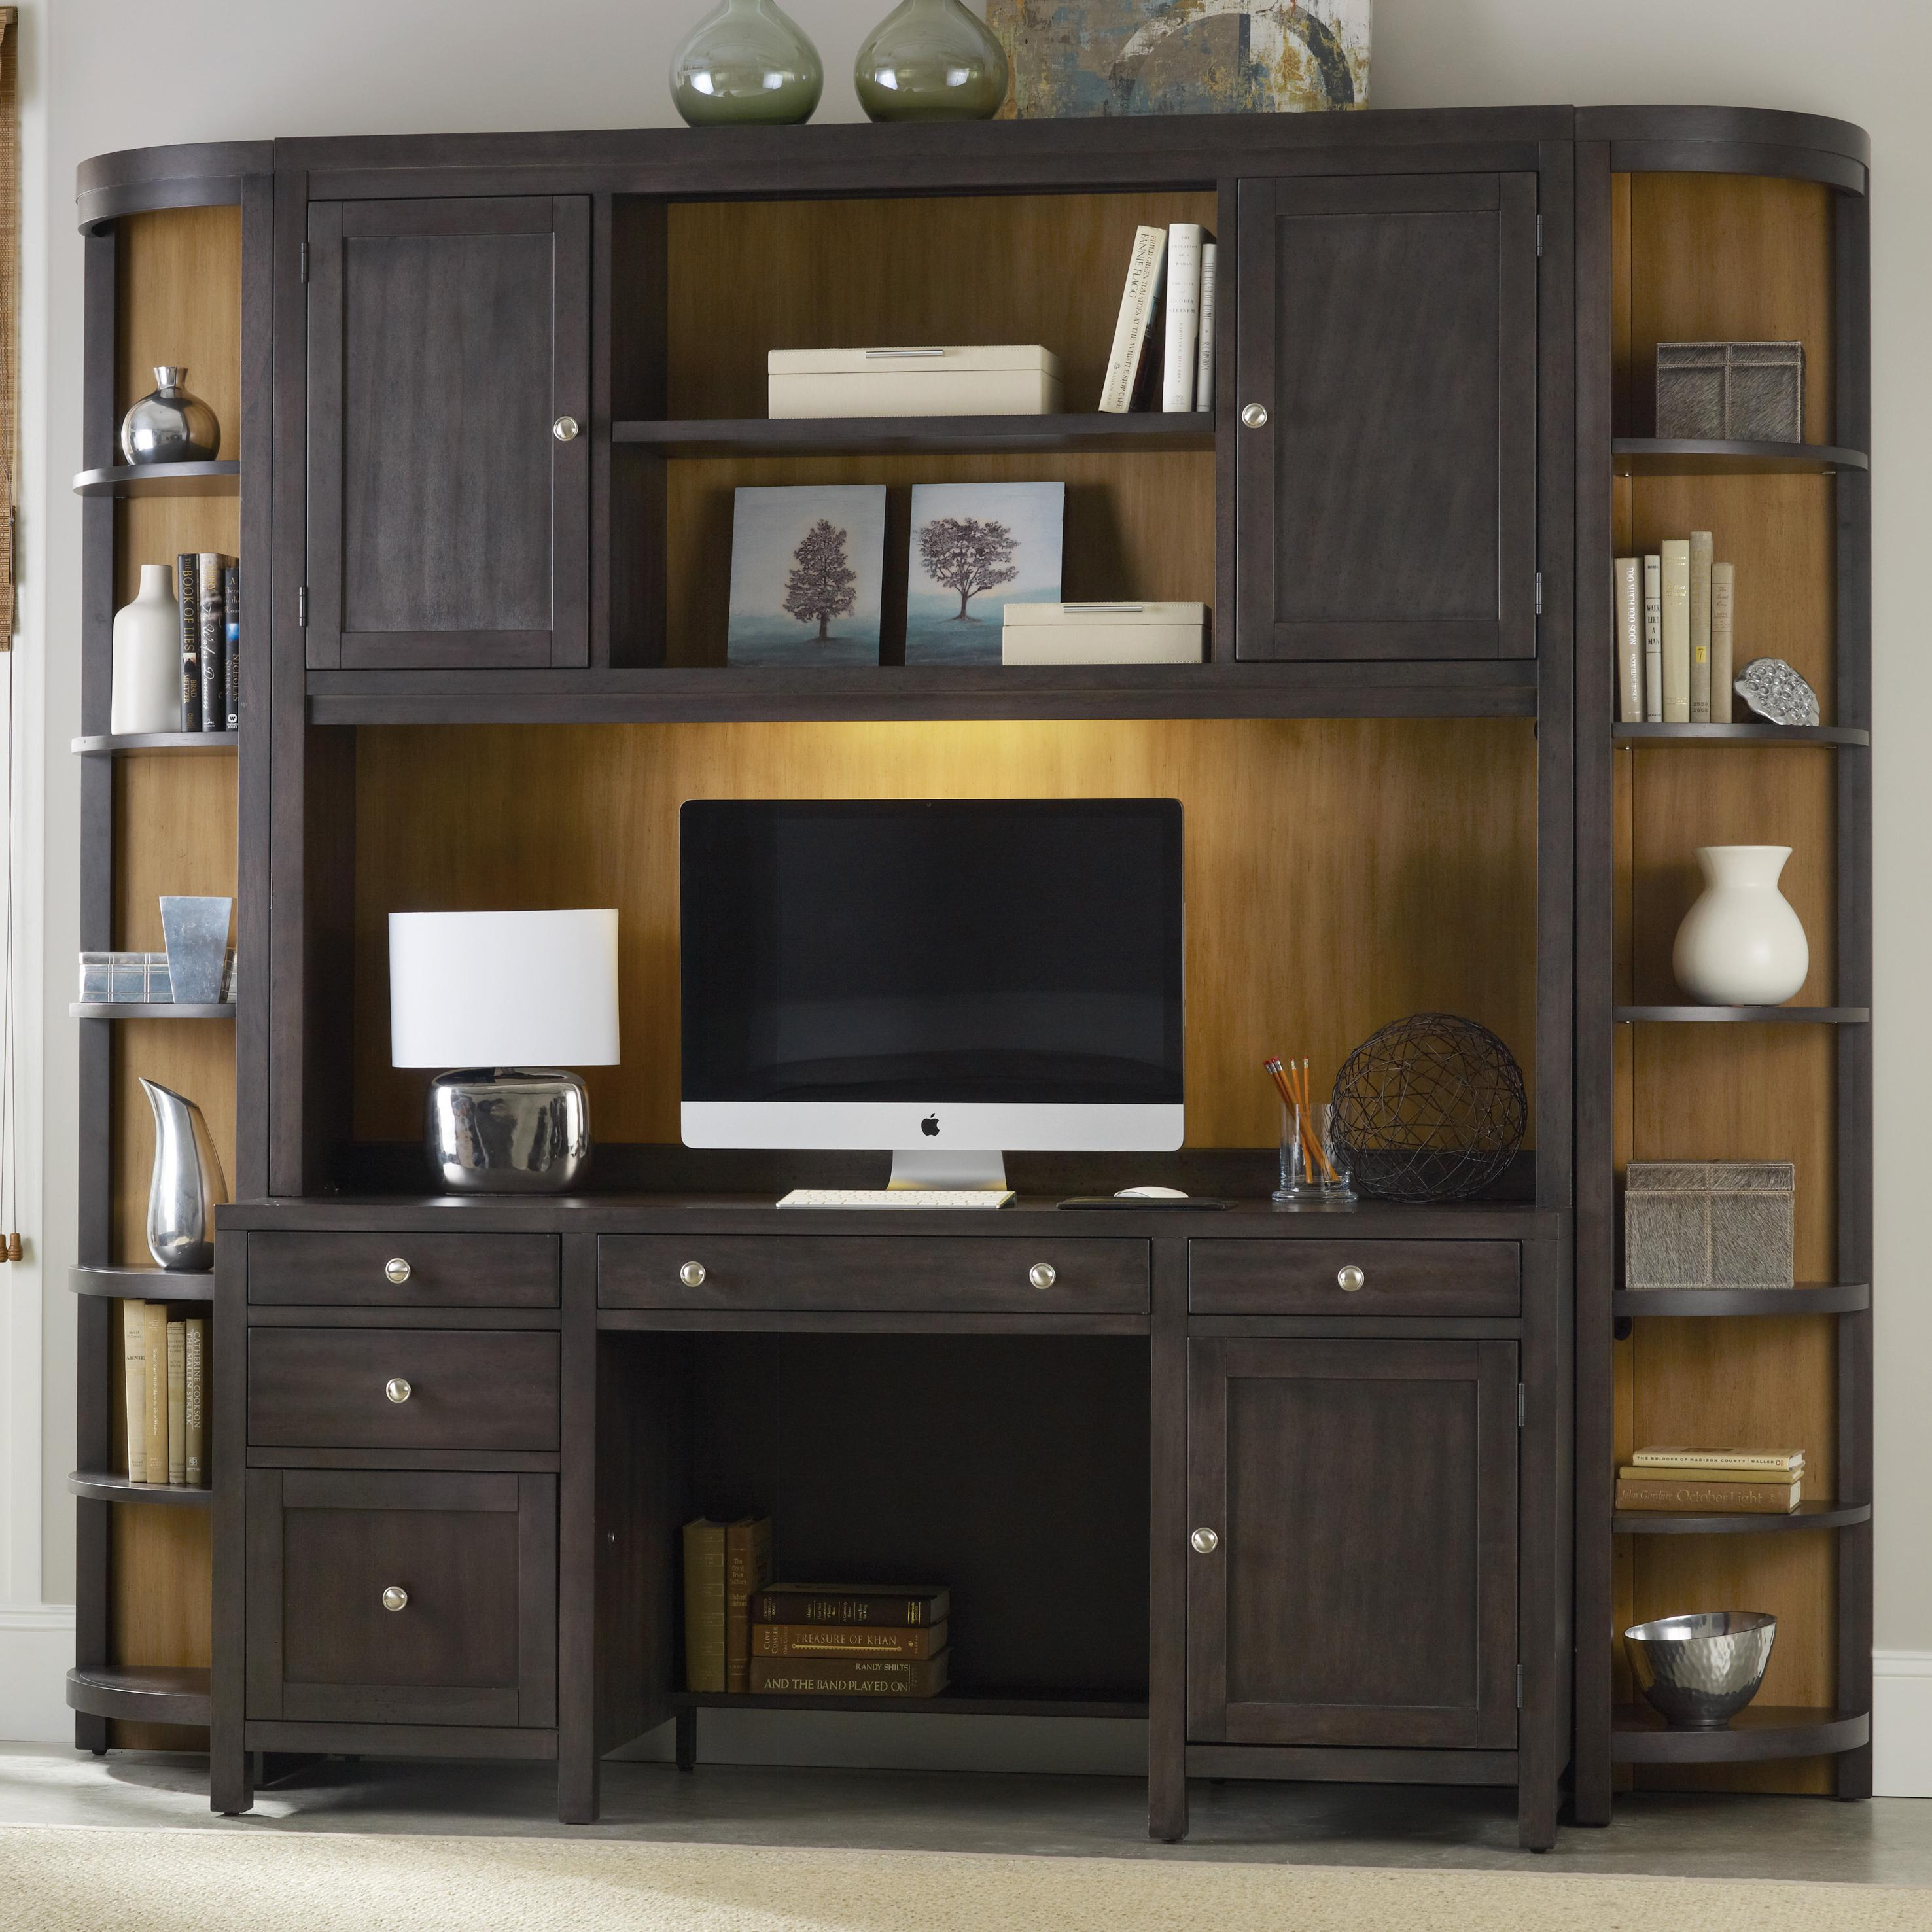 Computer Credenza Wall Unit with Power Bar by Hooker Furniture ...